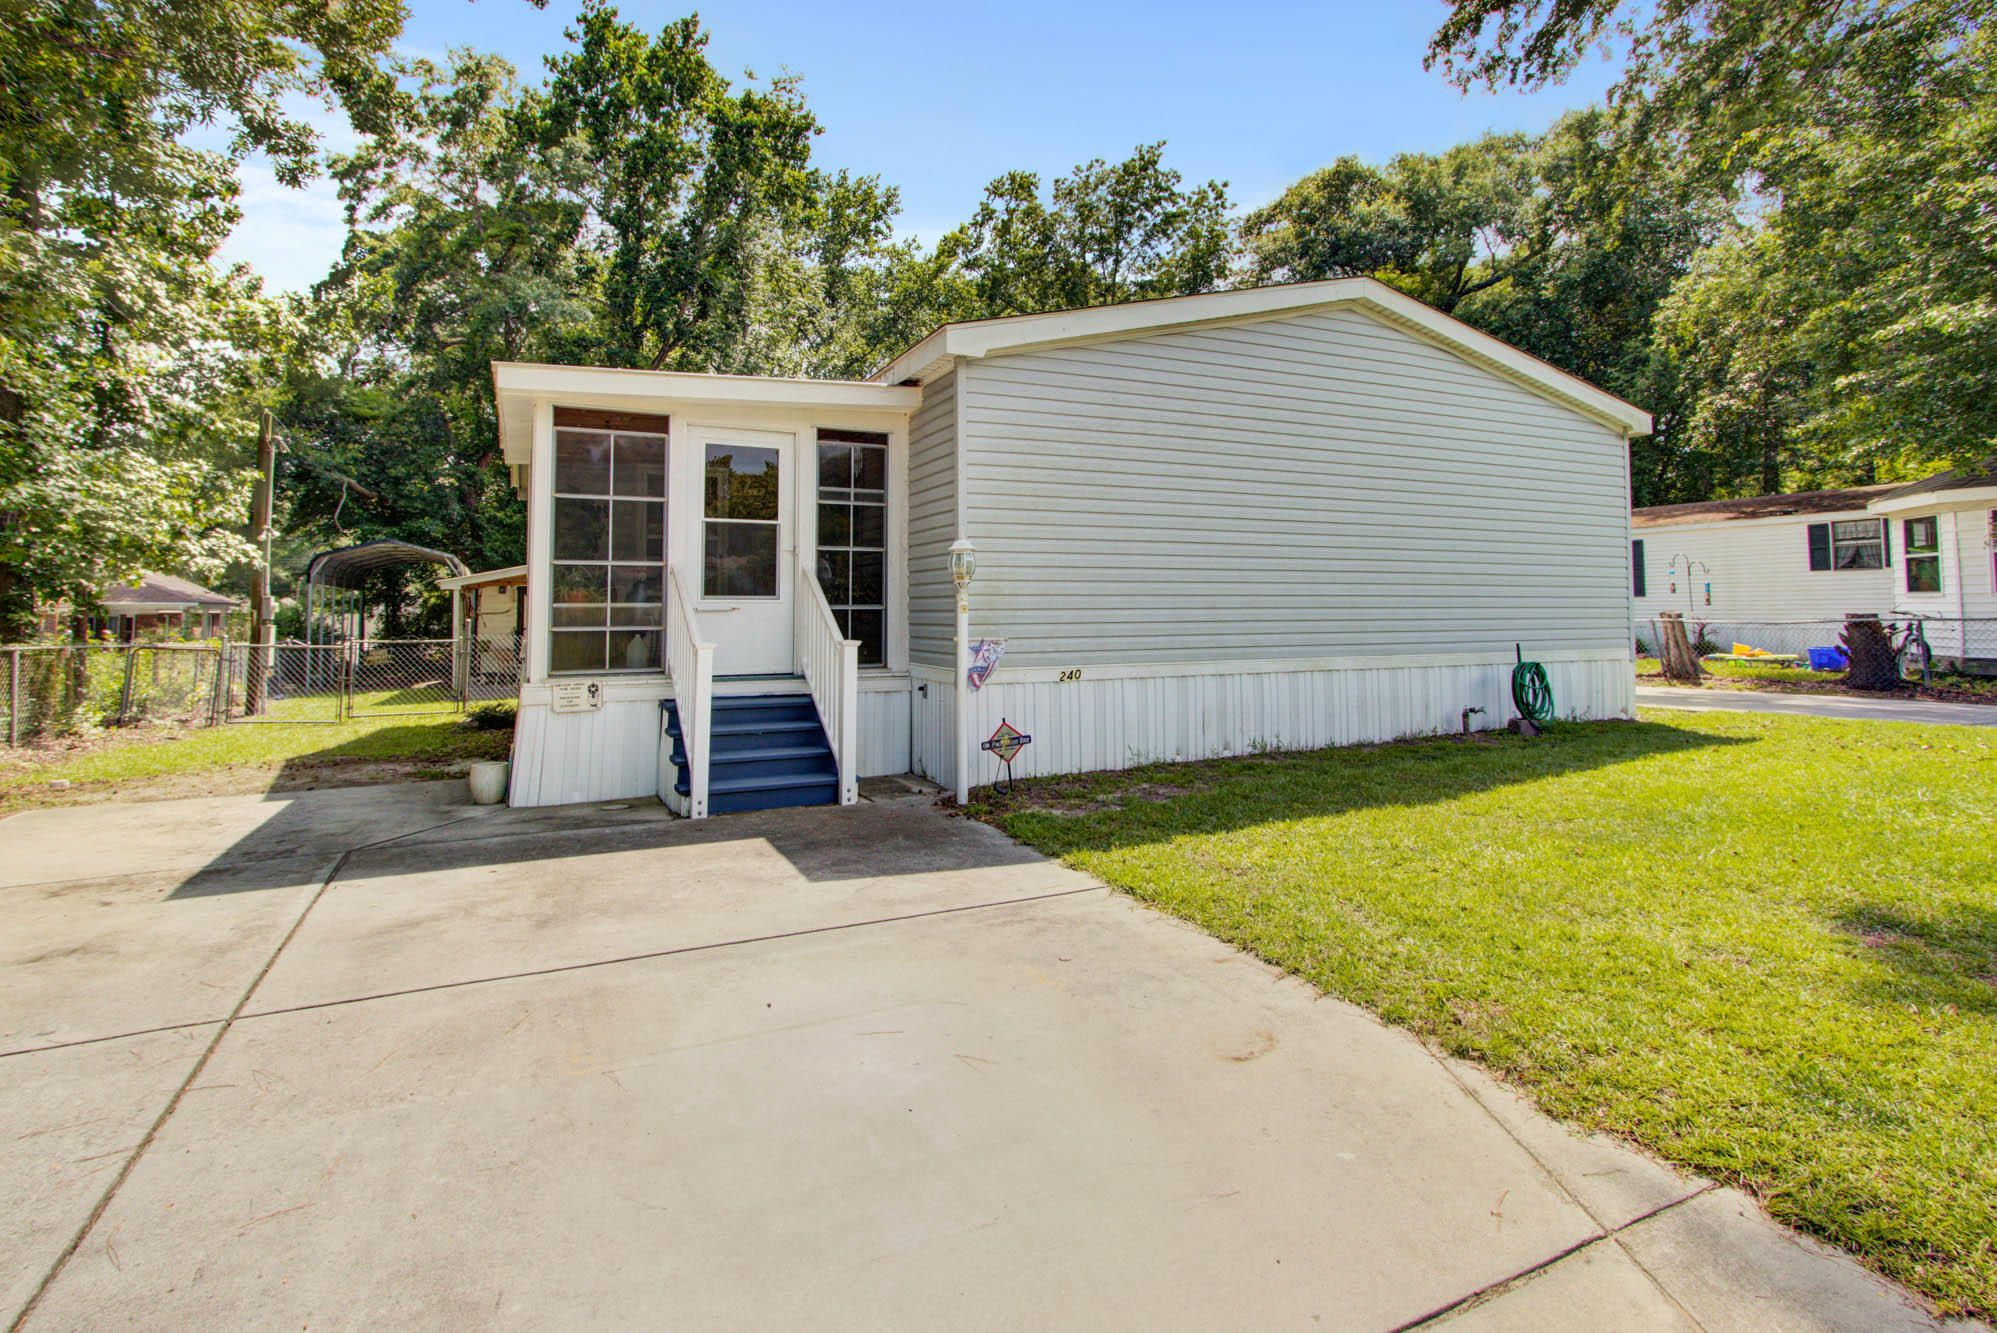 Cute mobile home on a corner lot with a neighbor on one